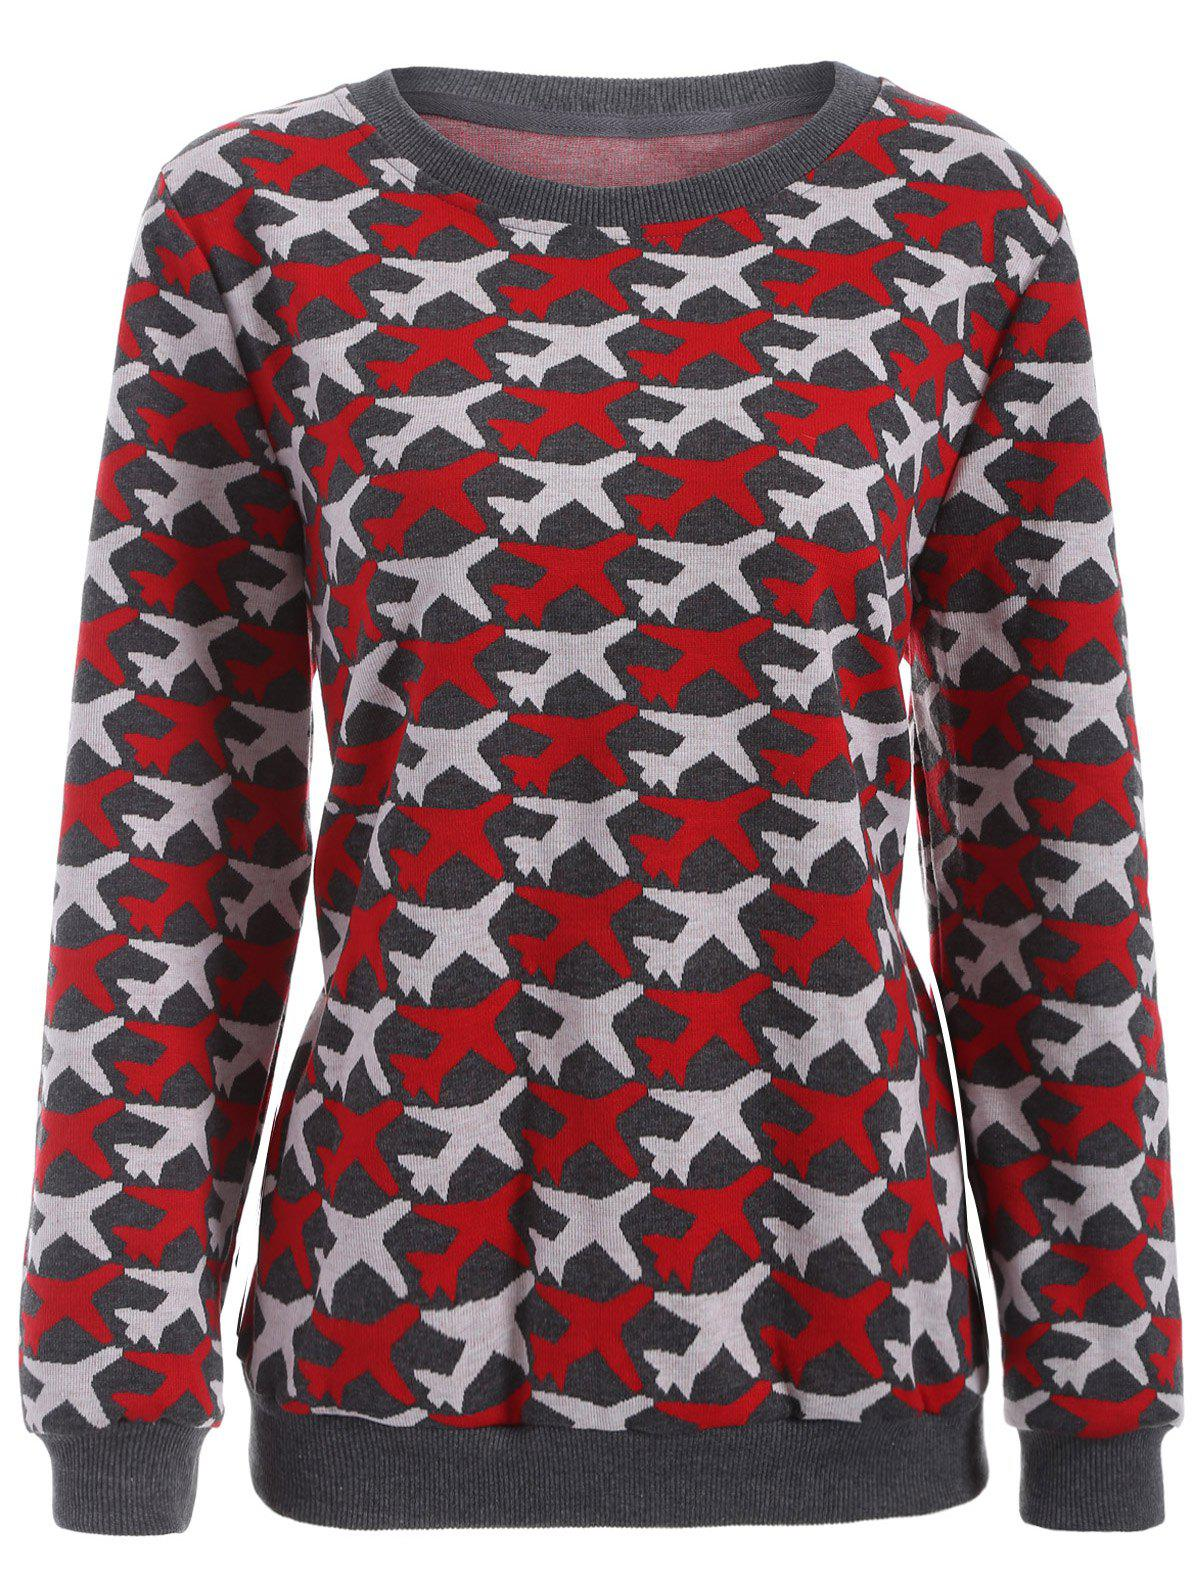 Casual Airplane Pattern Plus Size Knit Sweatshirt - RED 2XL